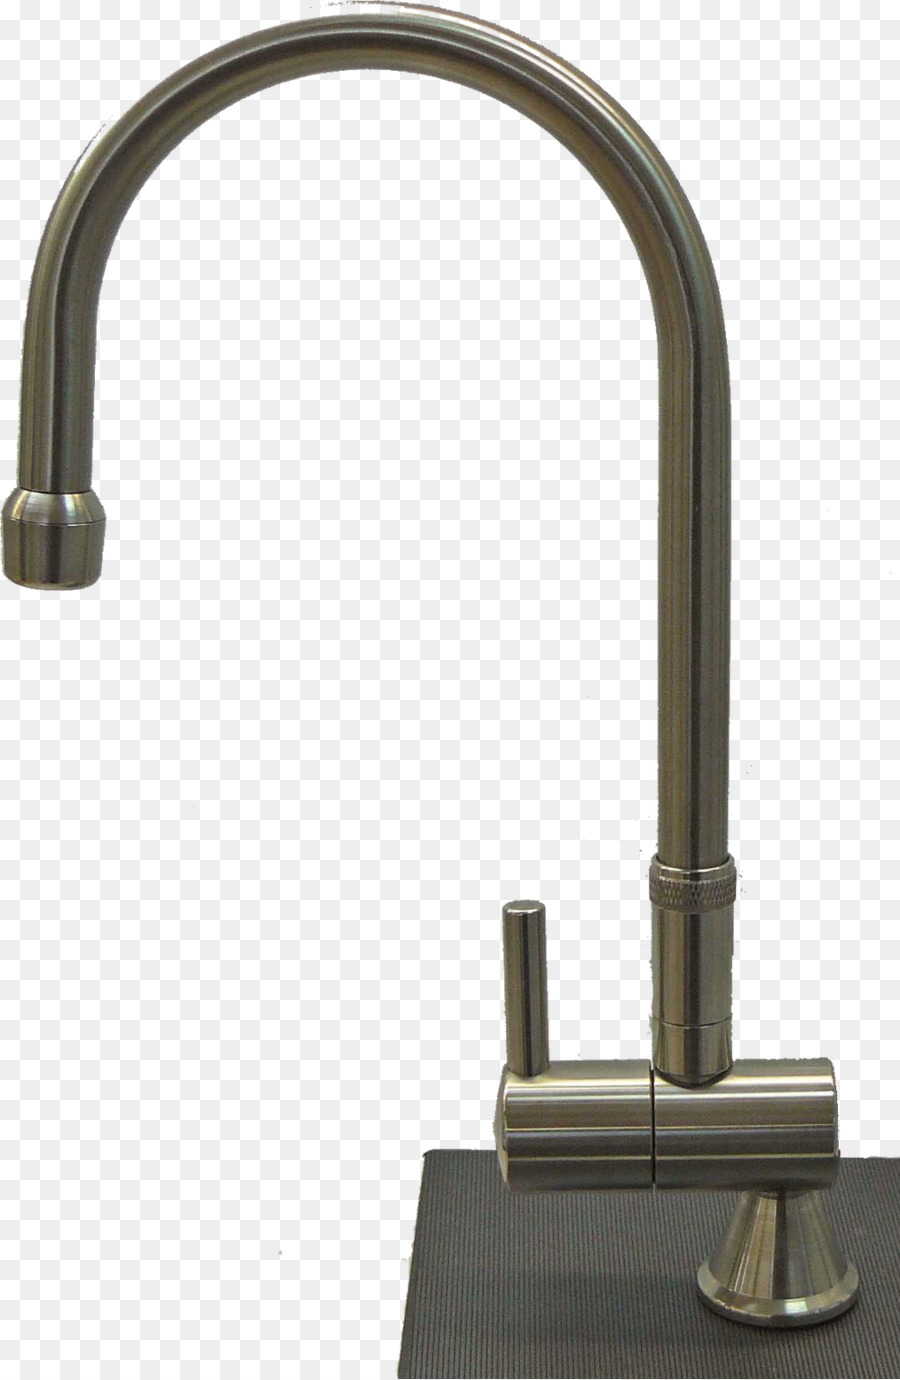 Tap Water Material Washing Plumbing Fixtures - water png download ...